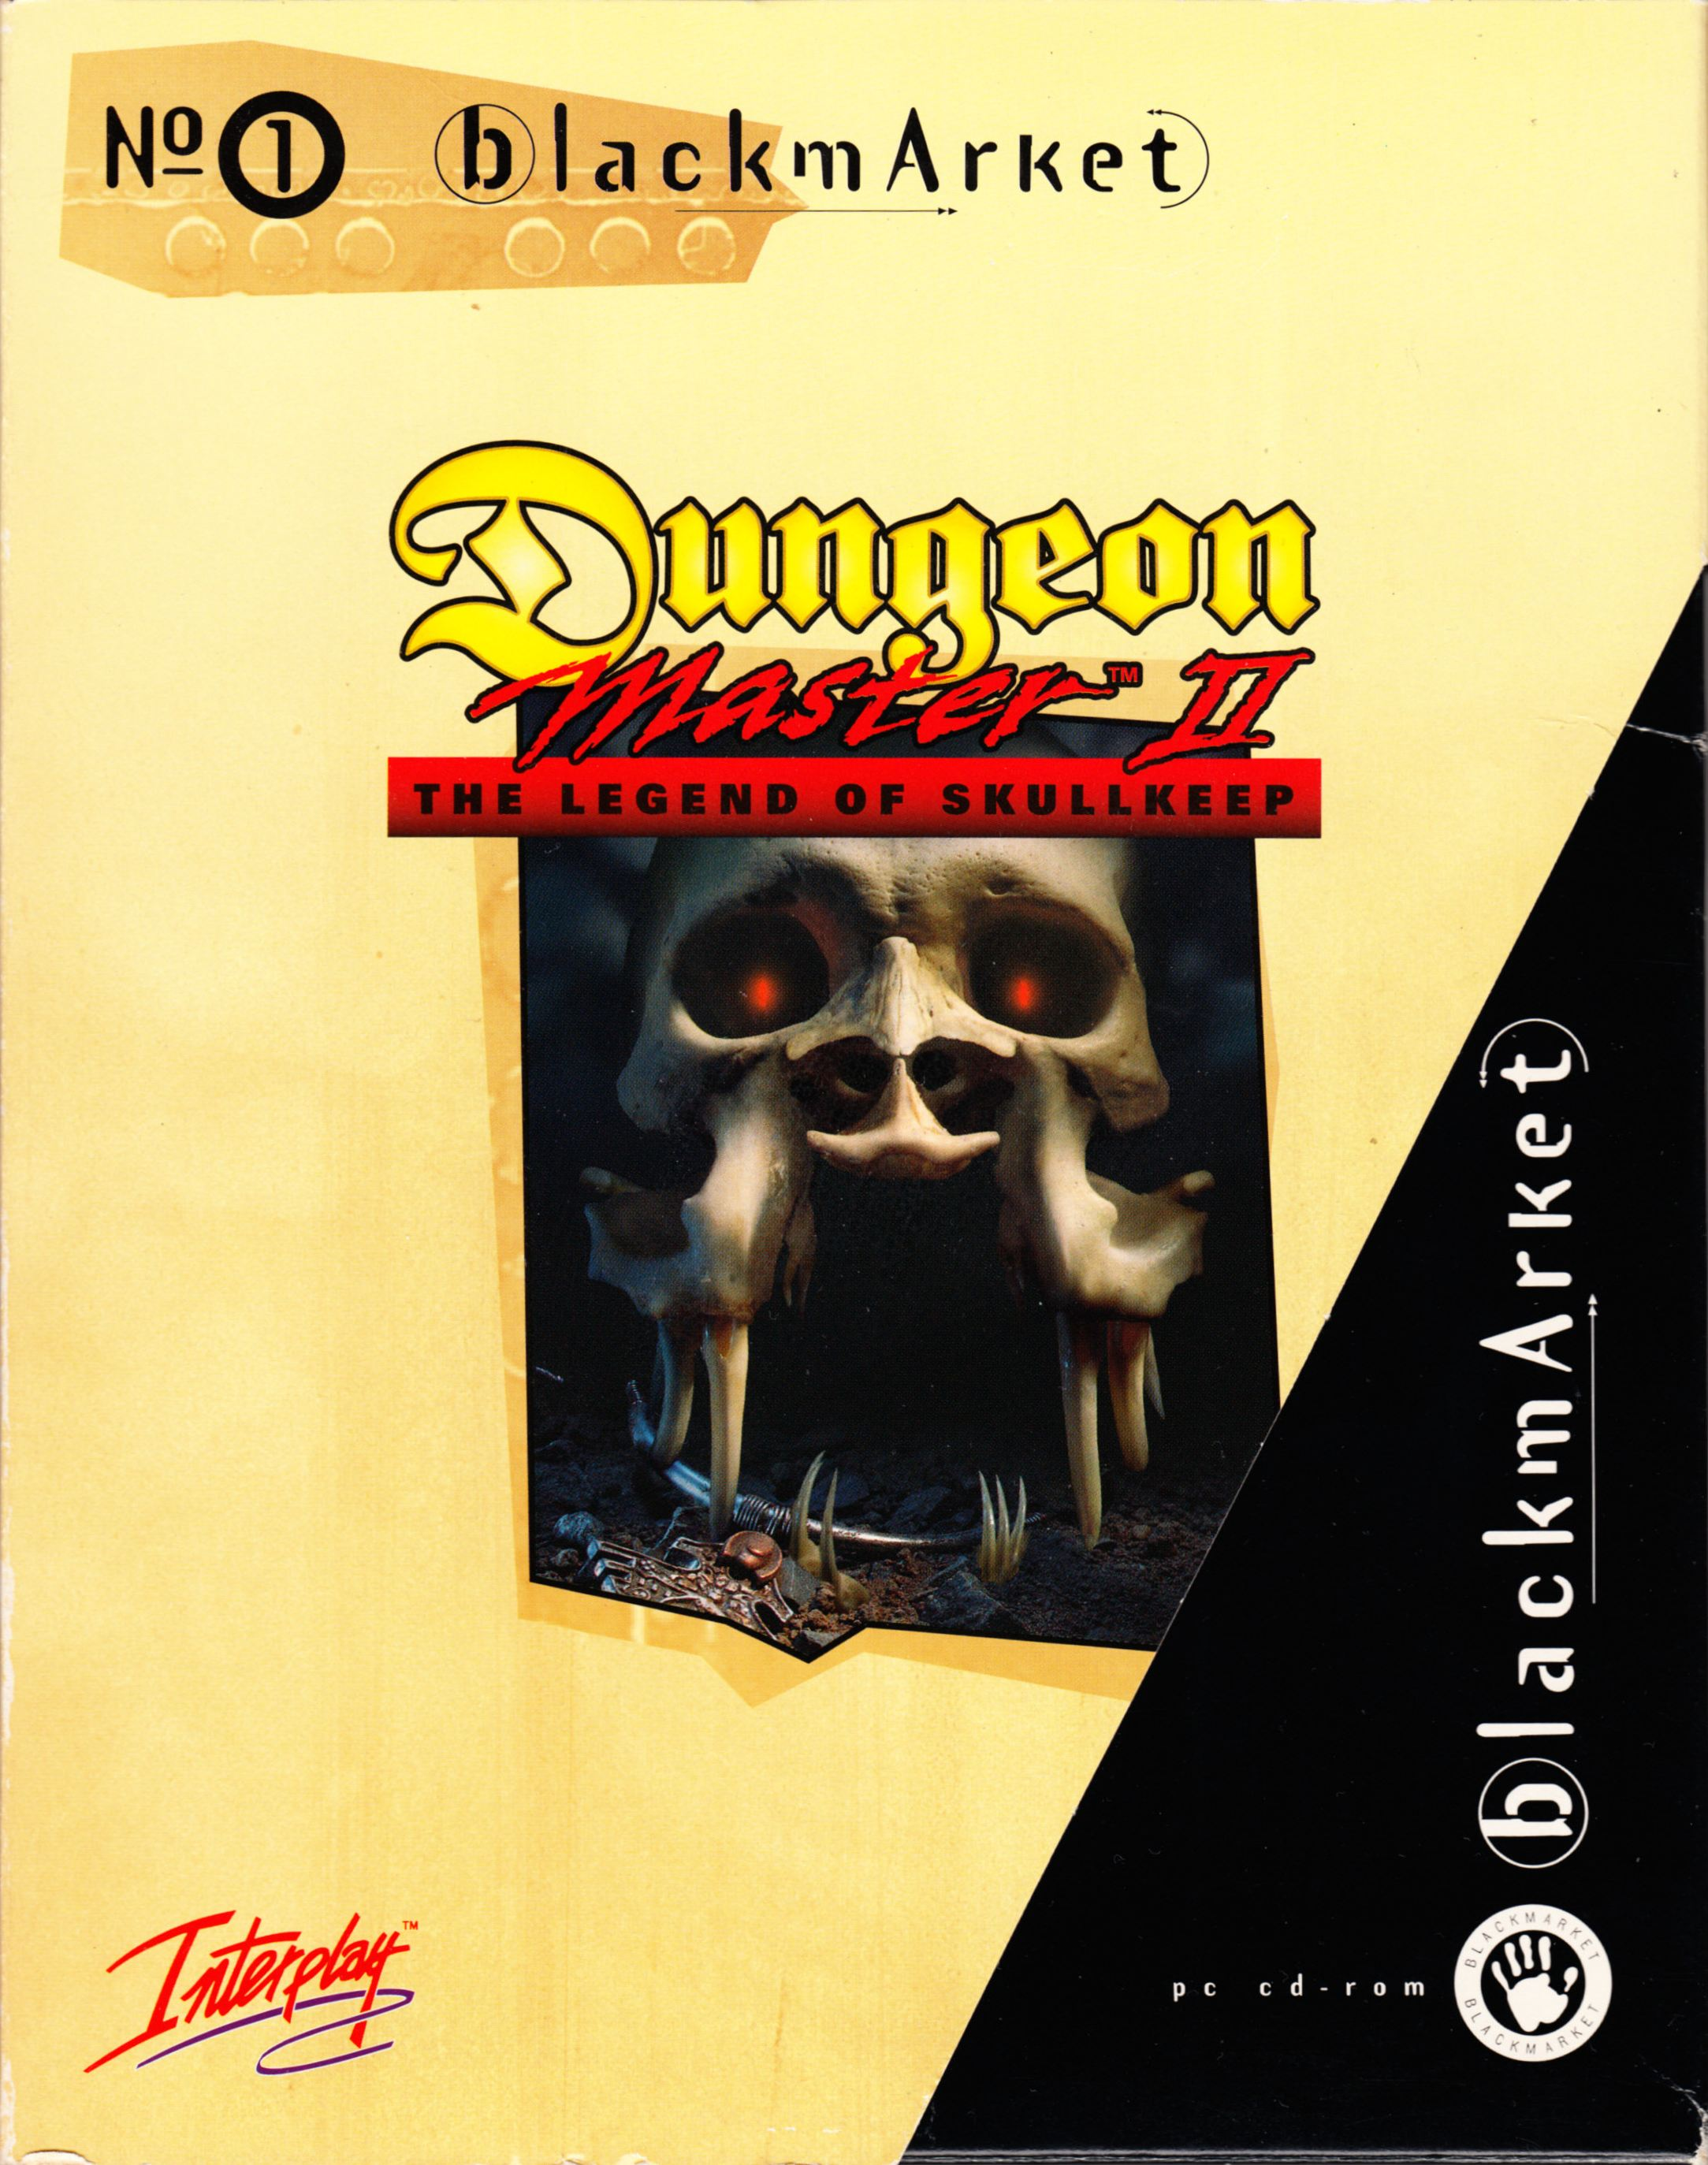 Game - Dungeon Master II - DE - PC - Blackmarket With Booklet - Box With Sleeve Without Sticker - Front - Scan